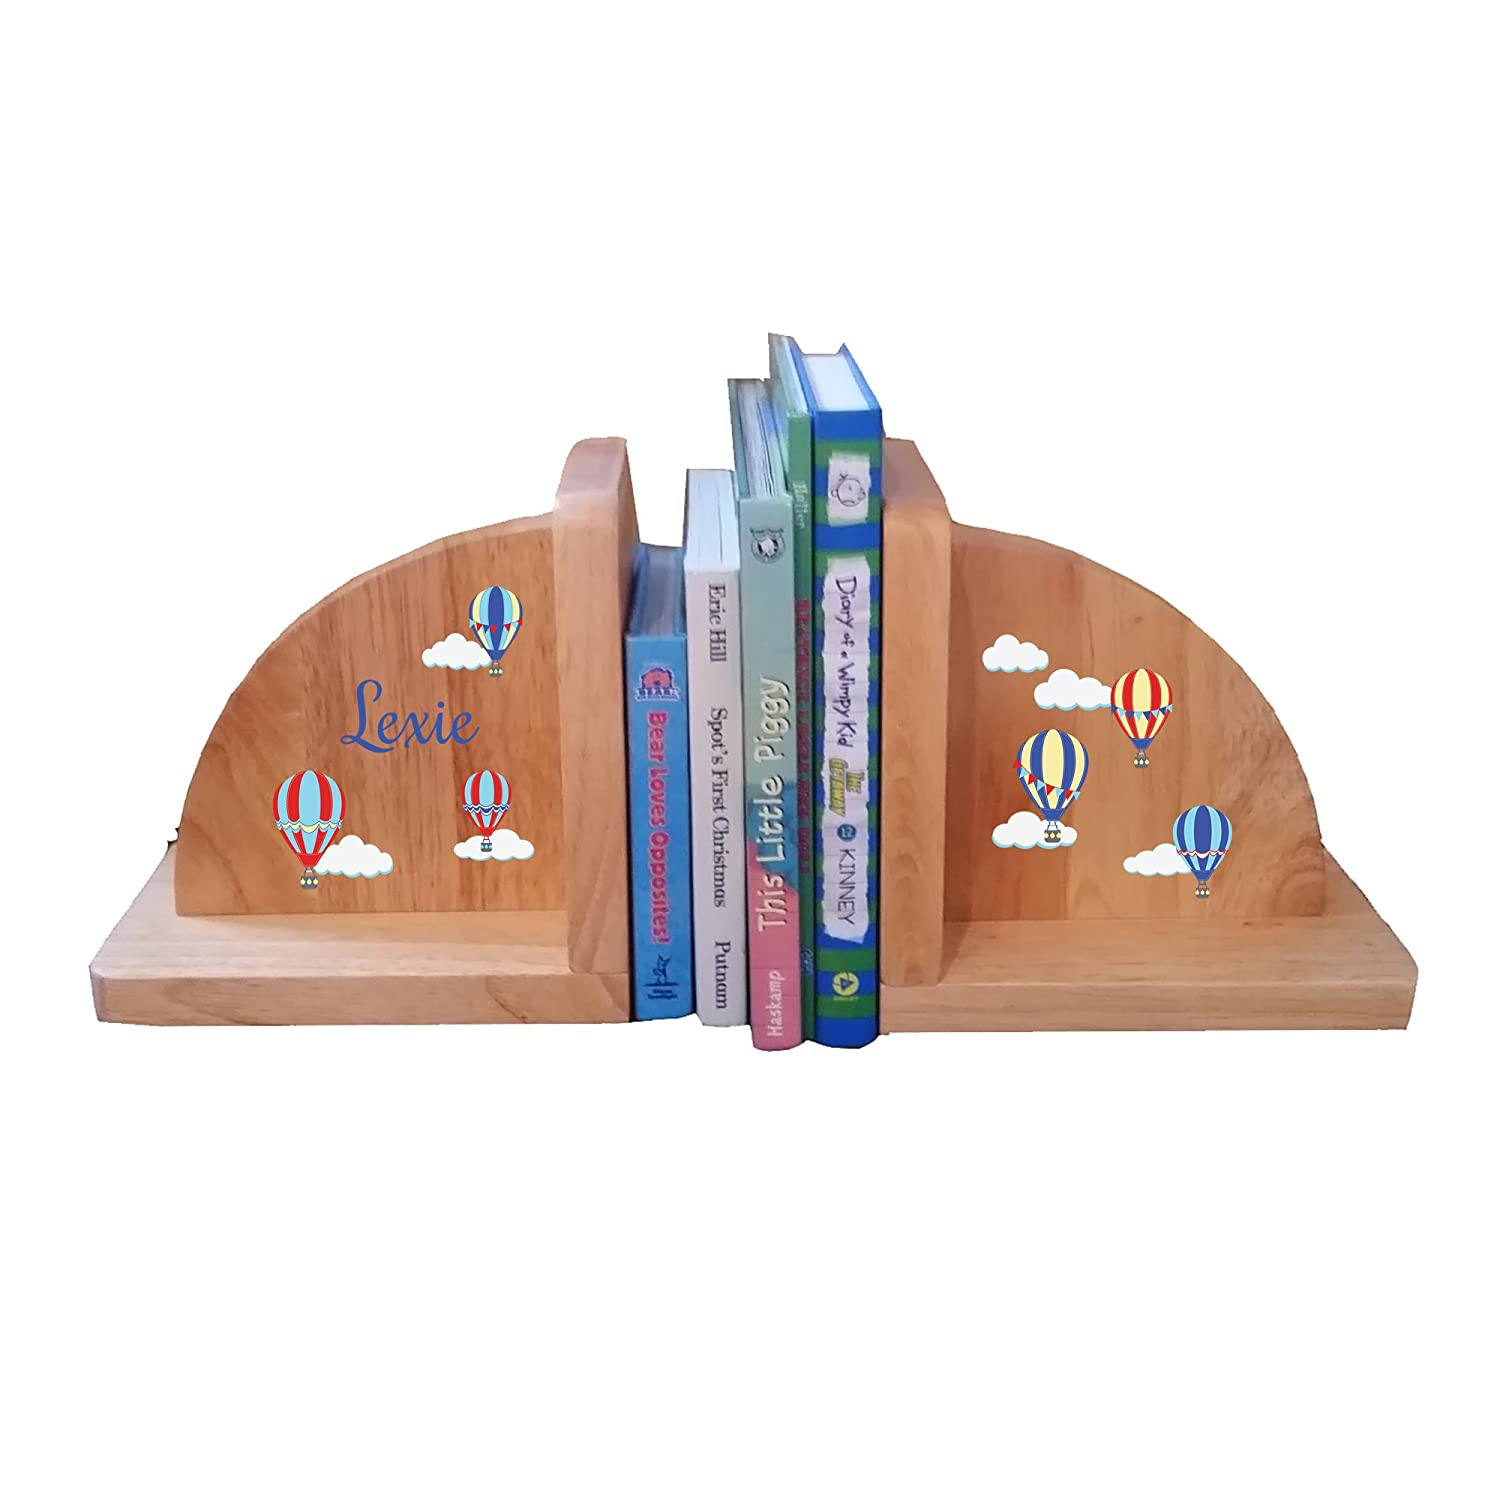 Personalized Hot Air Balloon primary Natural Childrens Wooden Bookends MyBambino ENDS-nat-PT-233b